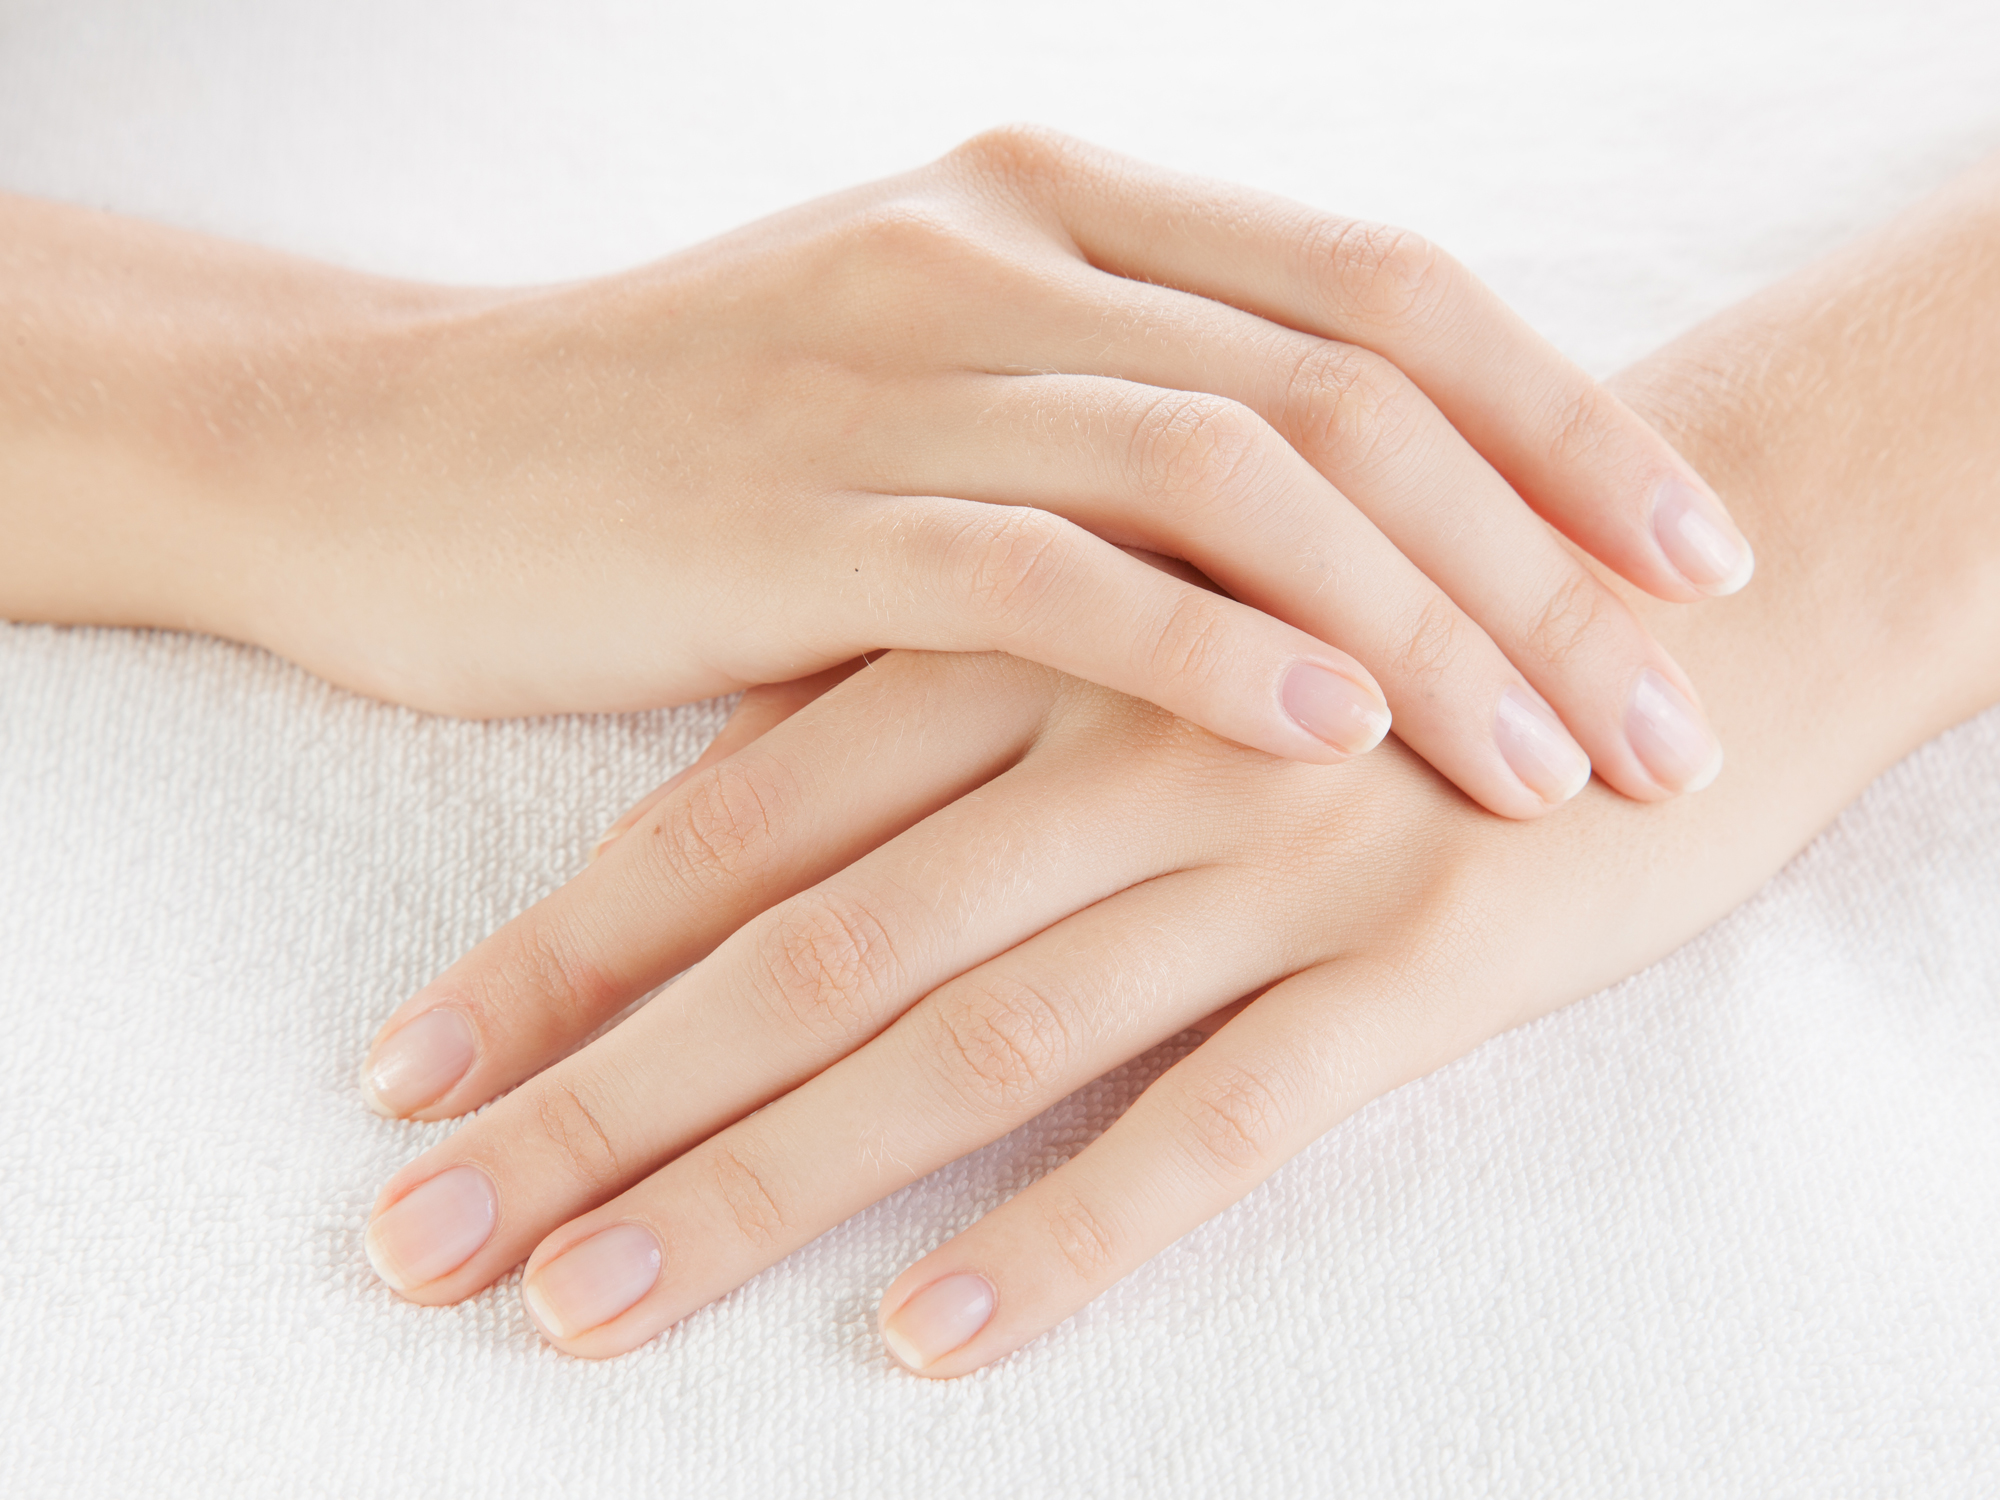 10 warning signs your fingernails are giving you - Easy Health Options®